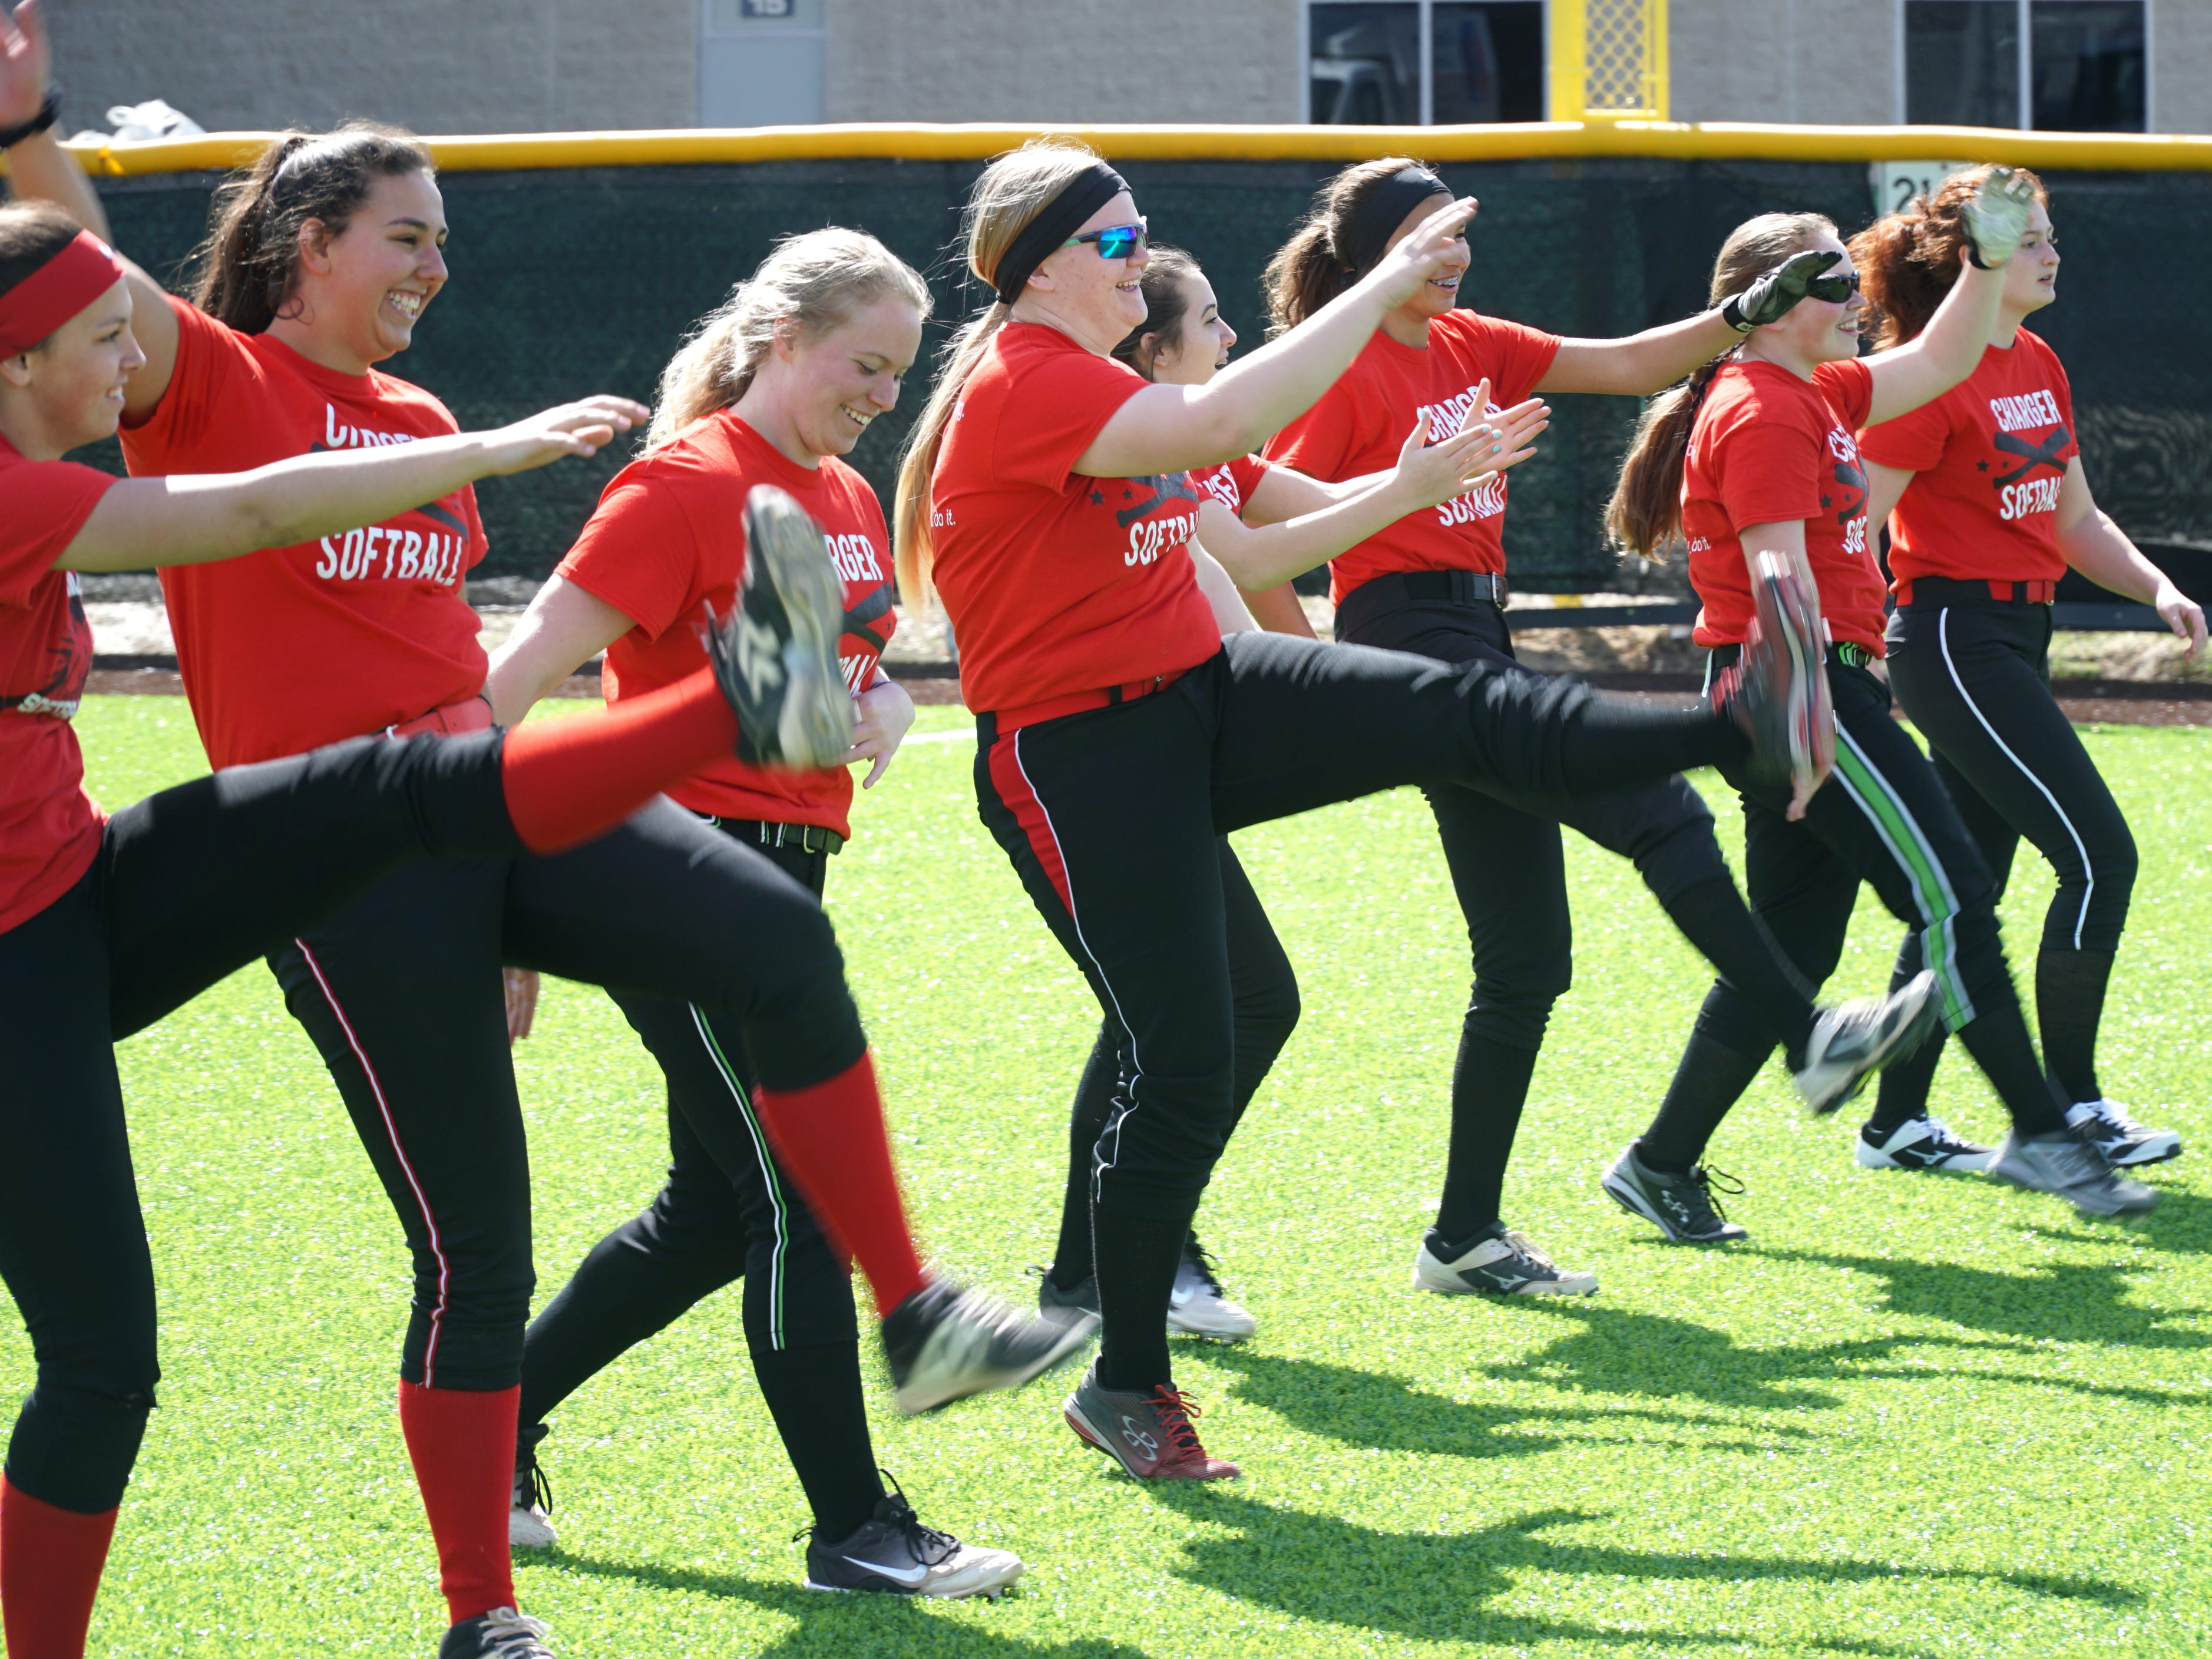 The Livonia Churchill varsity softball team warms up on April 9 at their home field off Newburgh. The team is planing some charity fundraiser games on April 15th and 17th for their coach Abe Vinitski who has severe kidney disease.